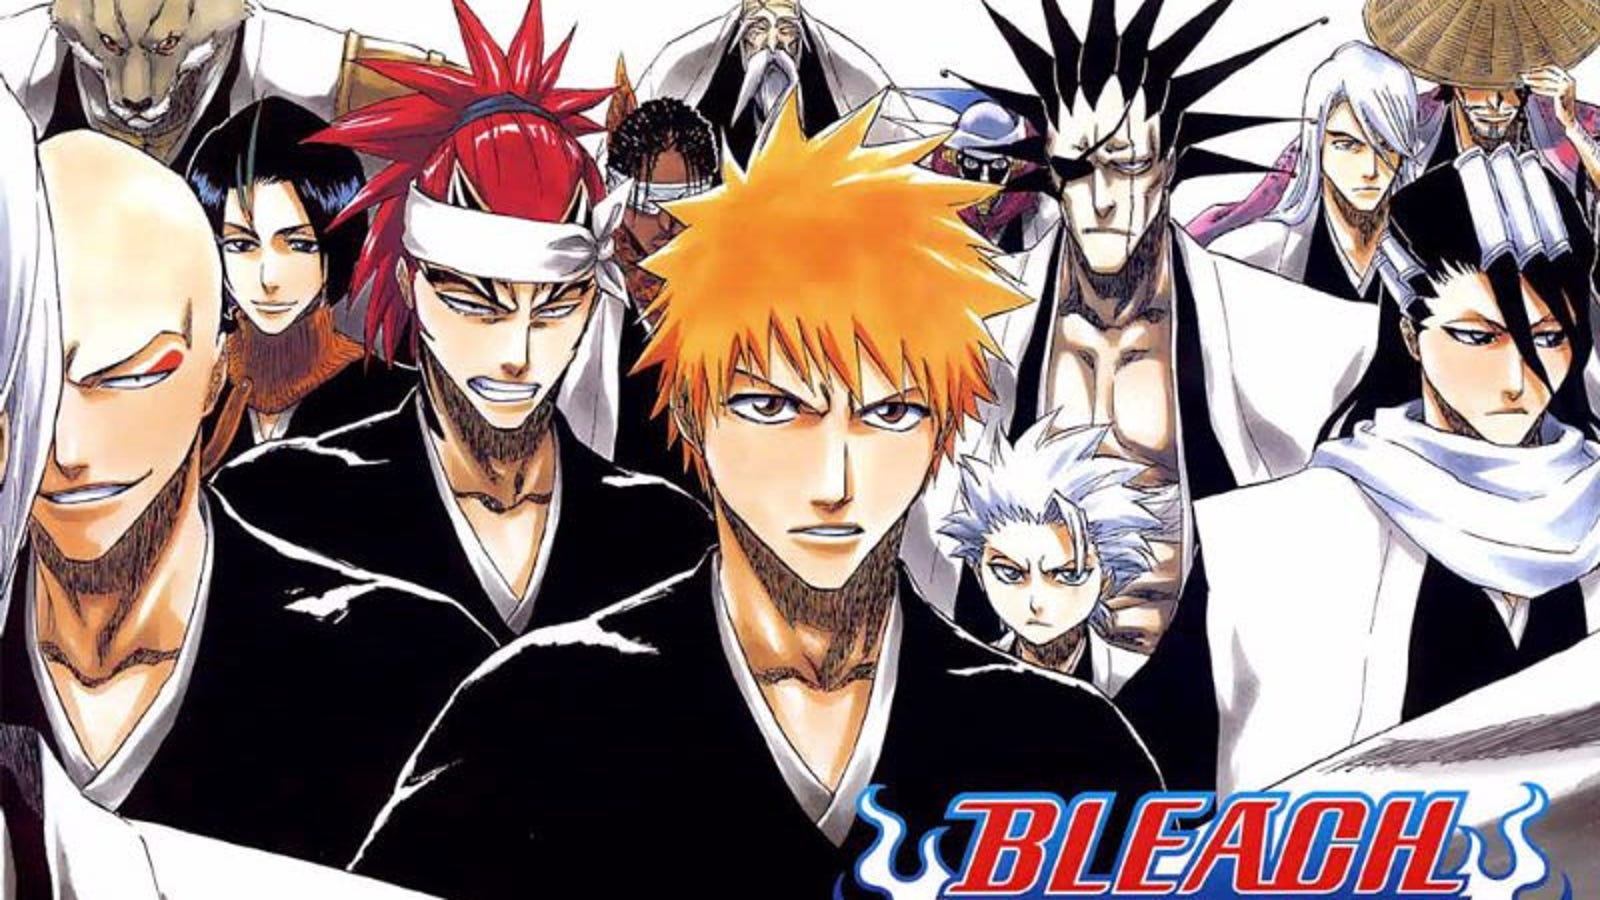 Bleach manga creator and a fans dying wish